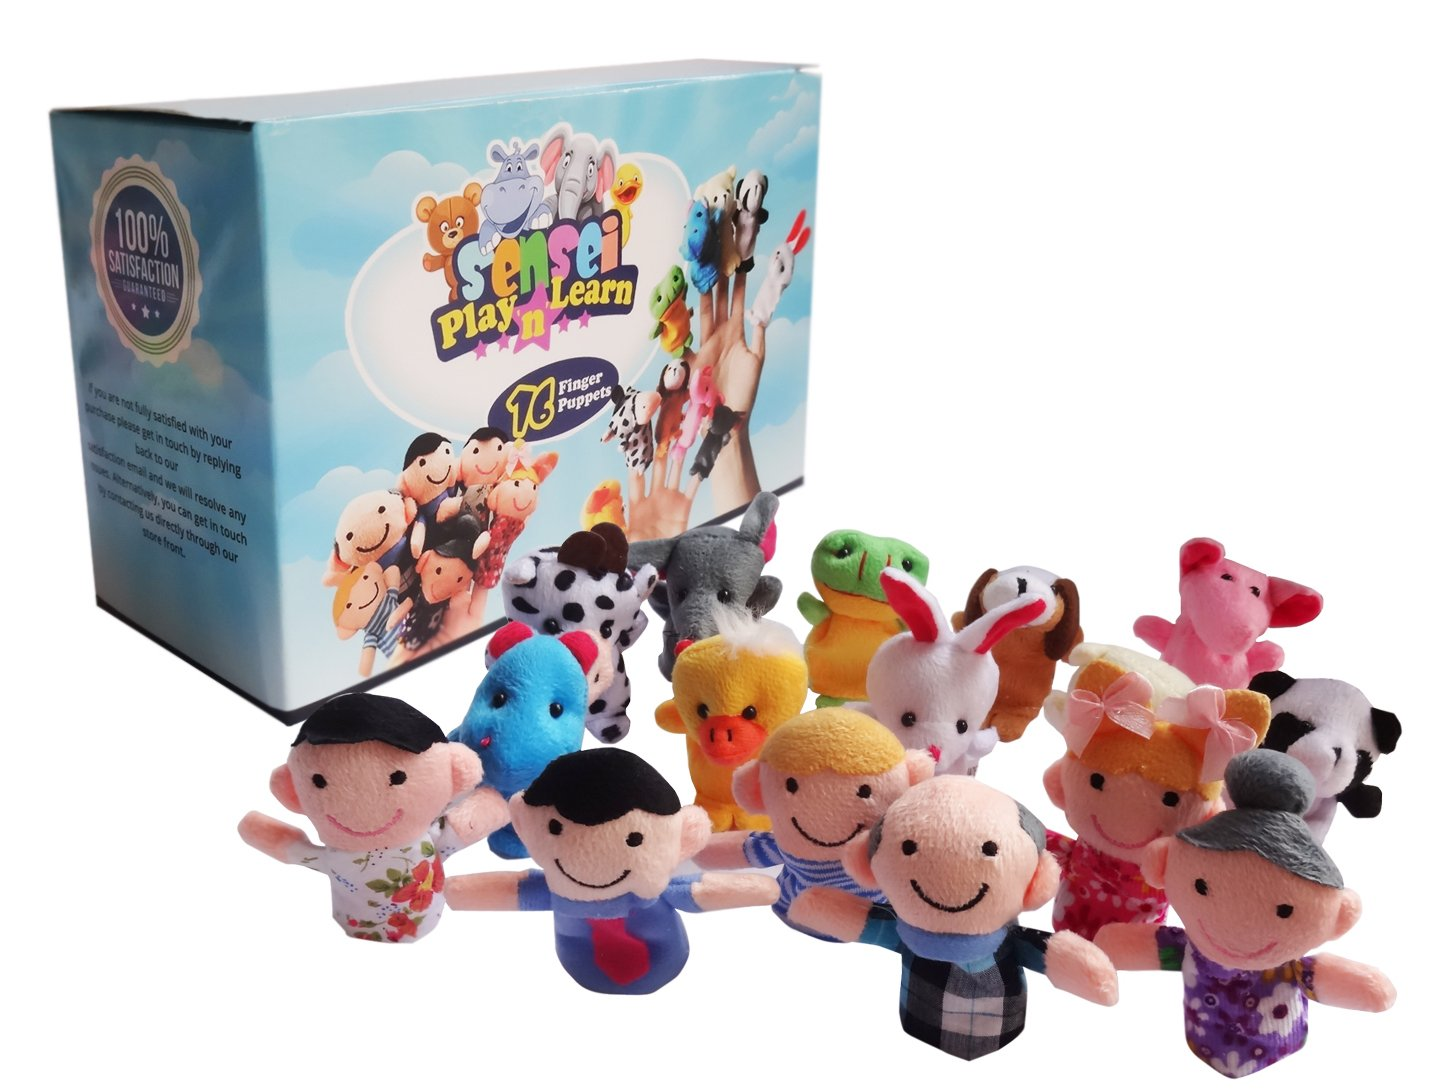 Sensei Play 'n' Learn Finger Family Puppets - People & Animals - 16 pcs - Finger Puppets Zoo Animals & Family Puppets For Kids, Babies, Toddlers & The Whole Family Senseitional Products